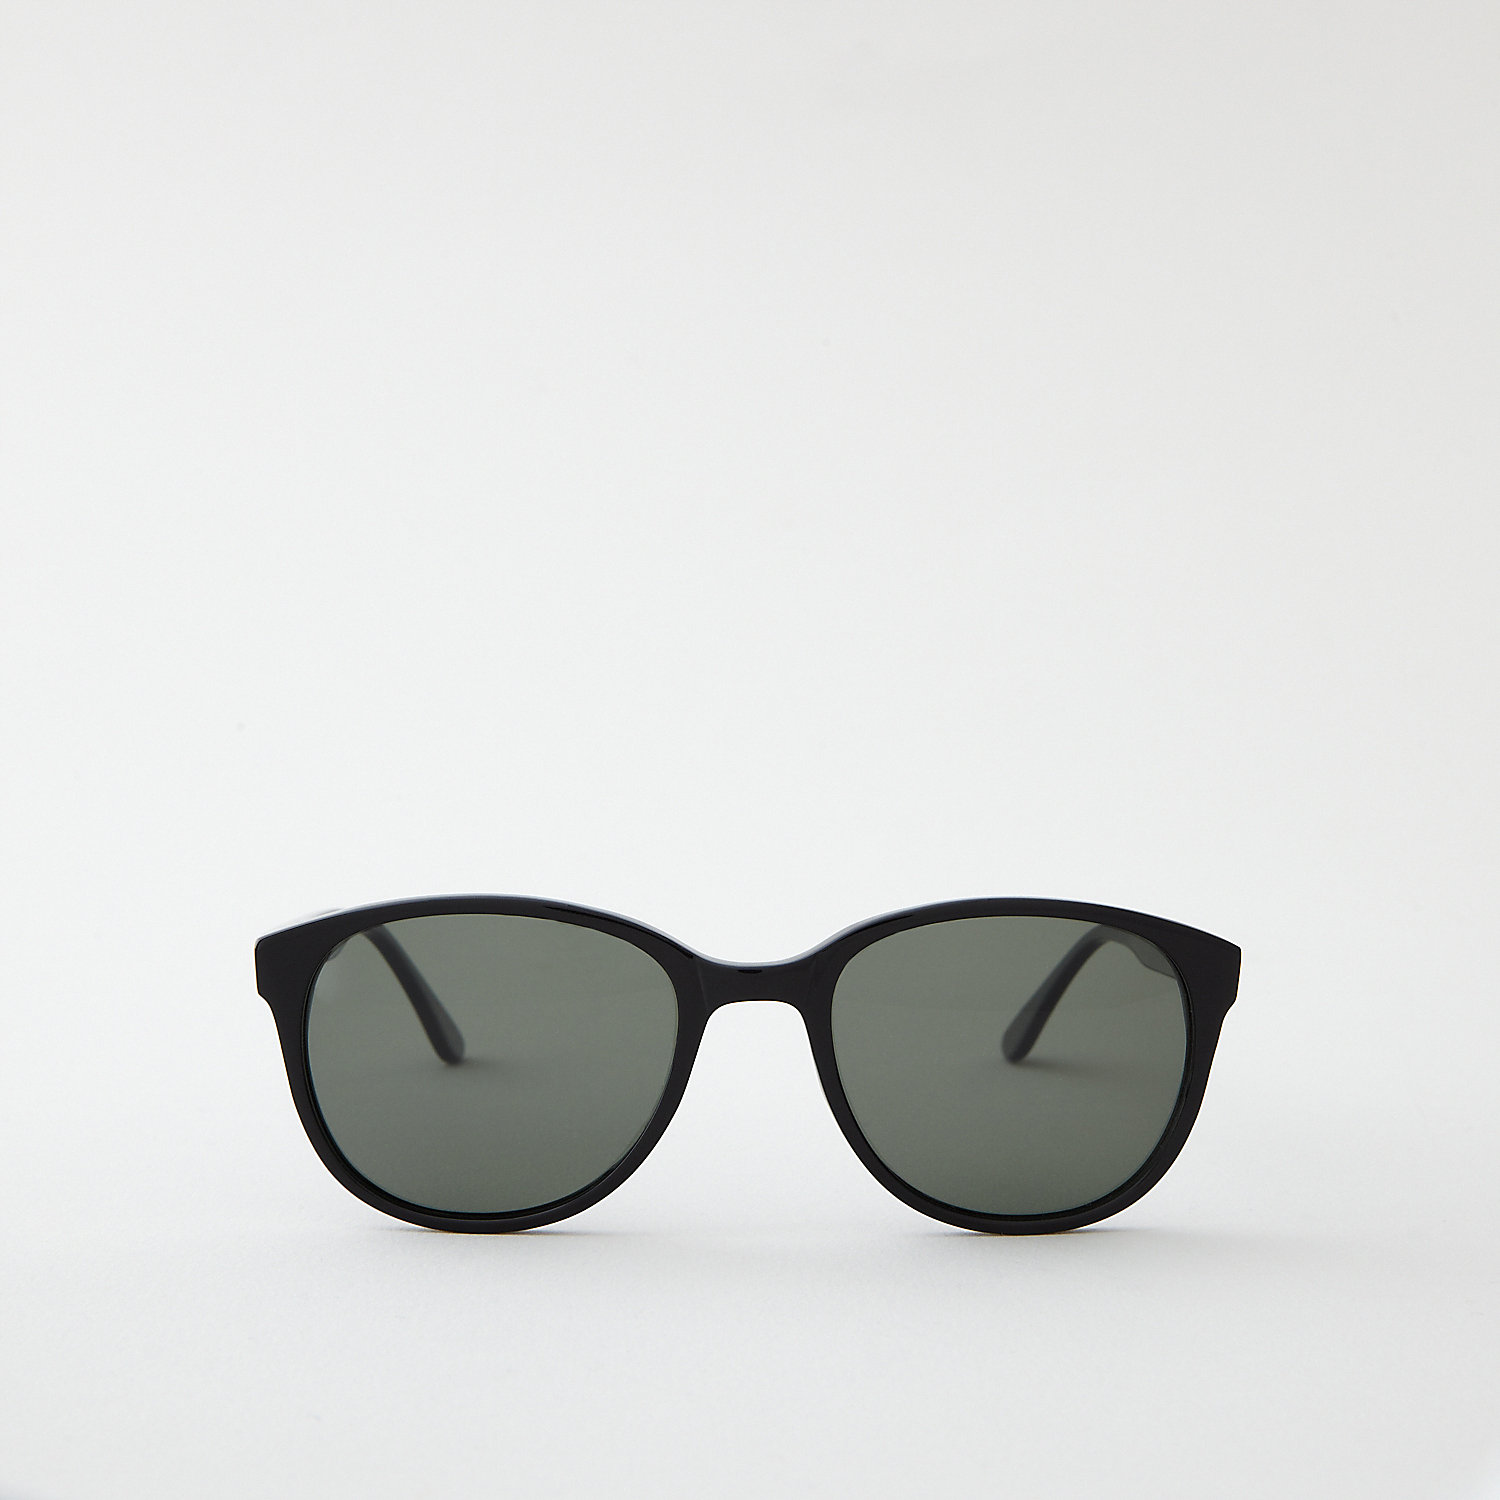 GRAHAM SUNGLASSES